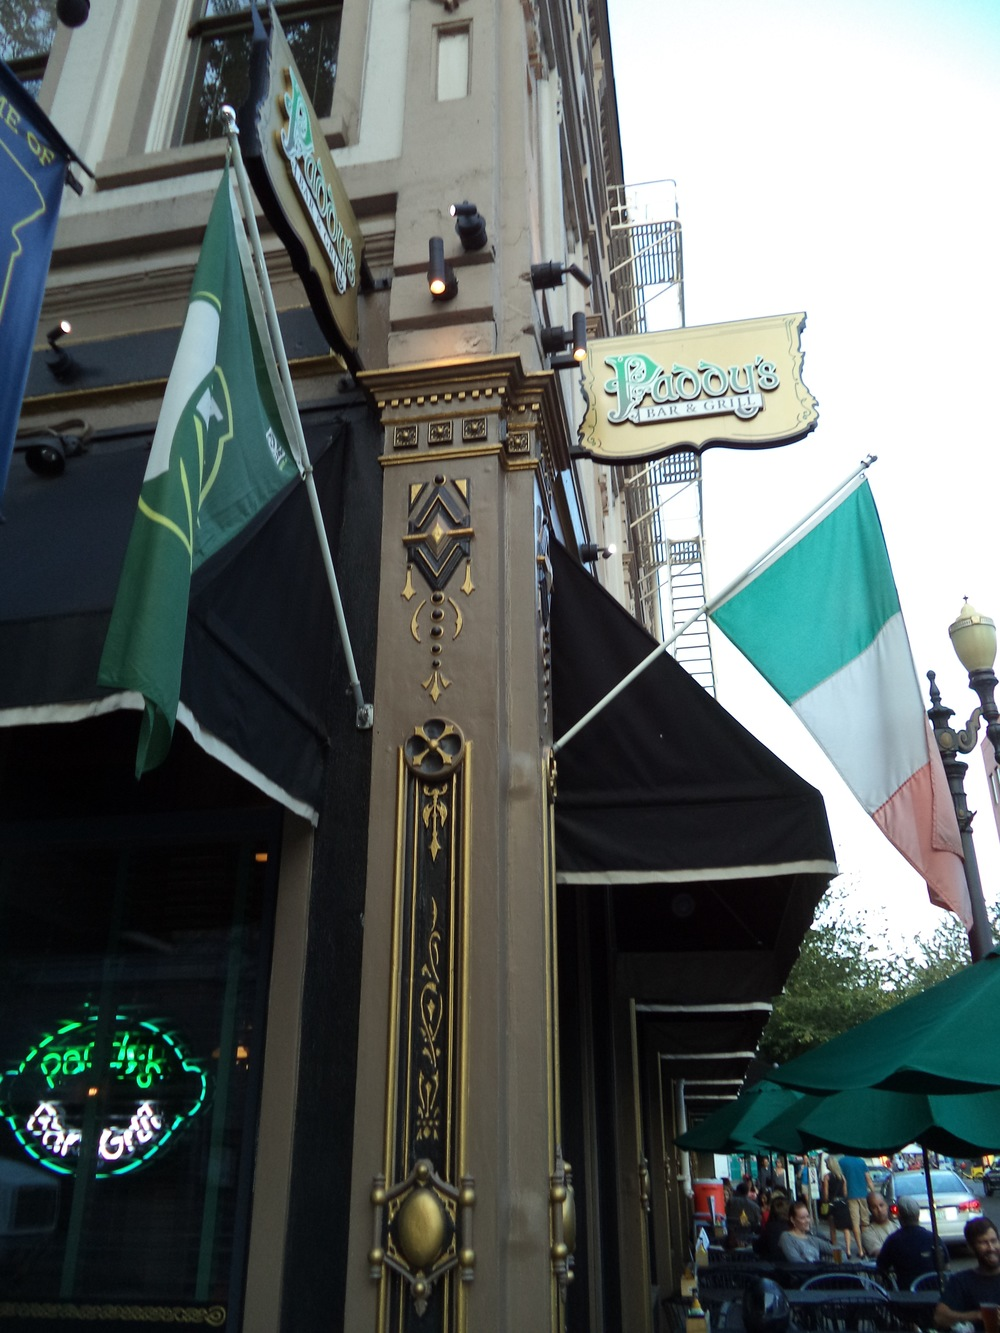 Paddy's Bar & Grill